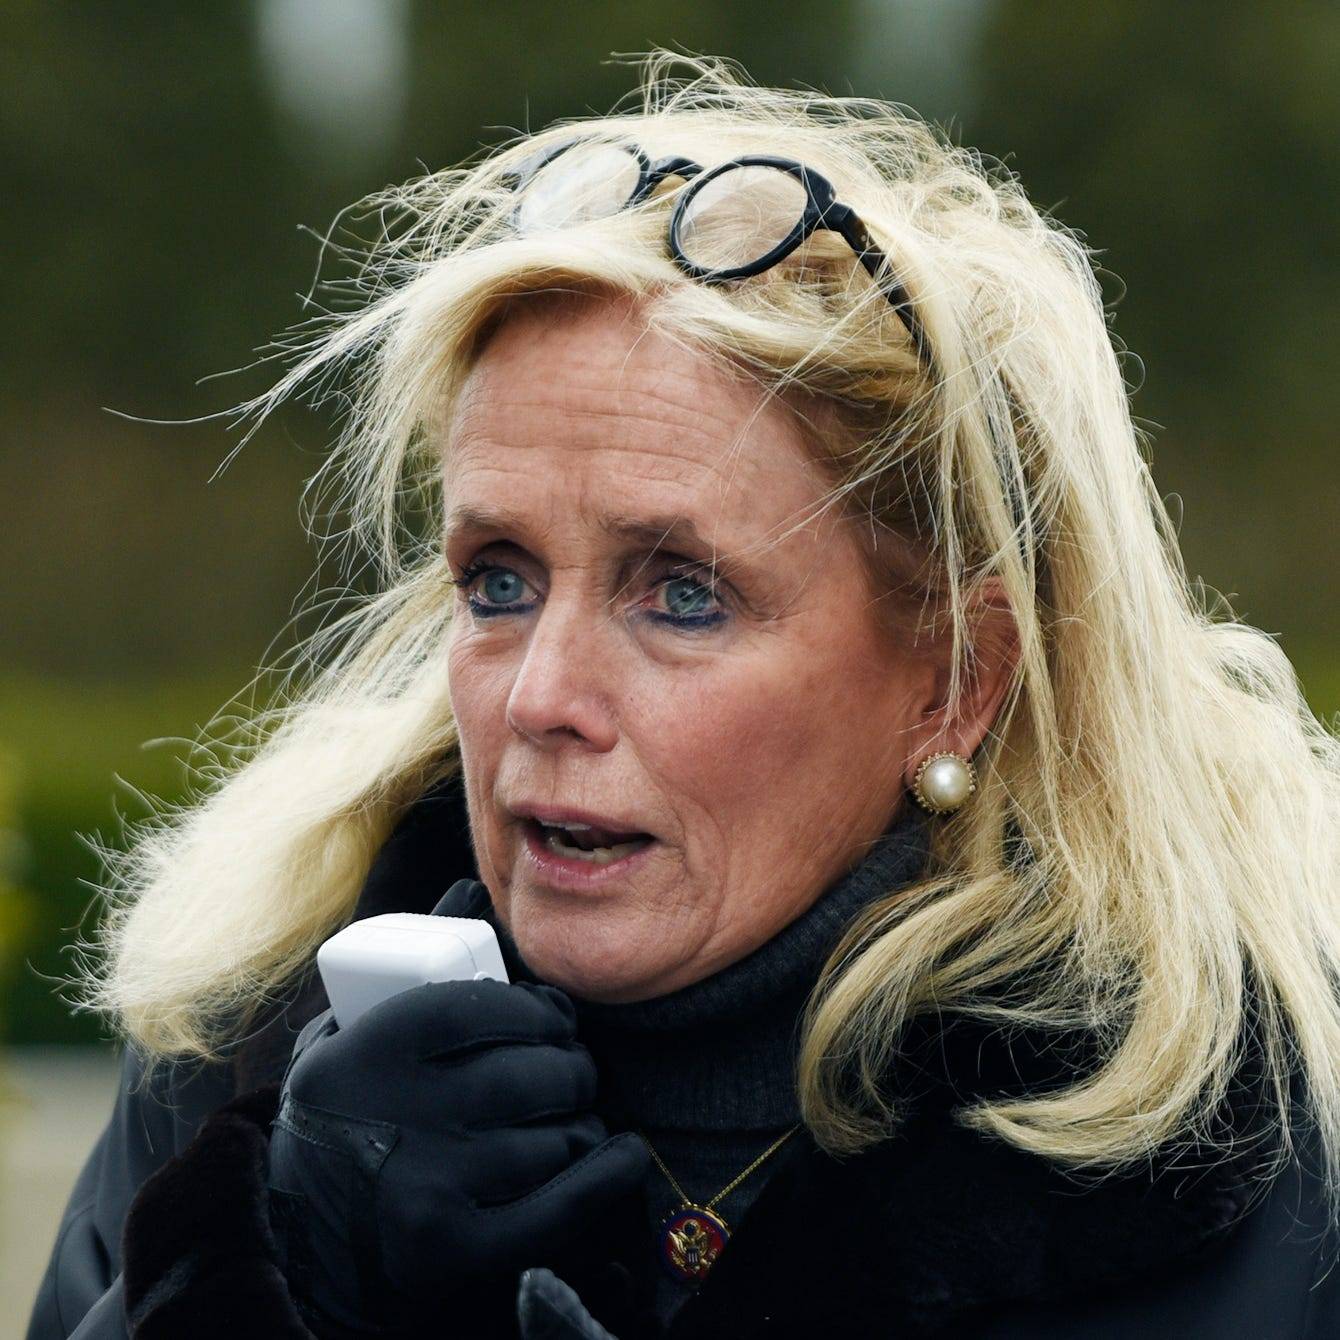 U.S. Rep. Dingell pushes for mandatory interlocks to prevent drunk driving